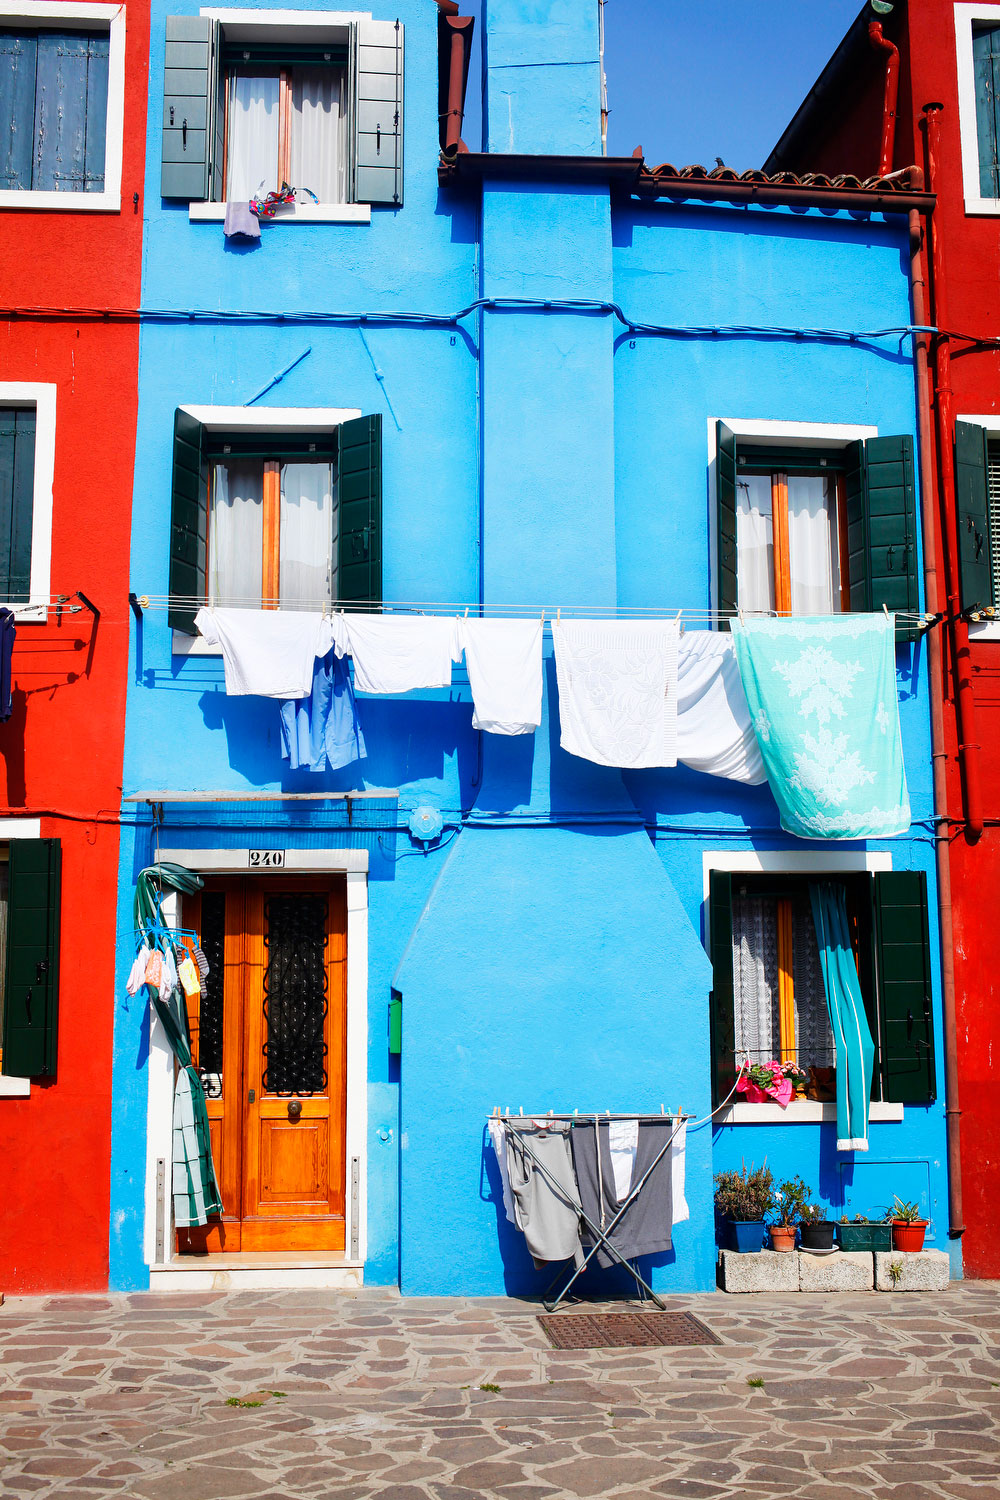 Colorful houses in Burano, Italy | Freckle & Fair